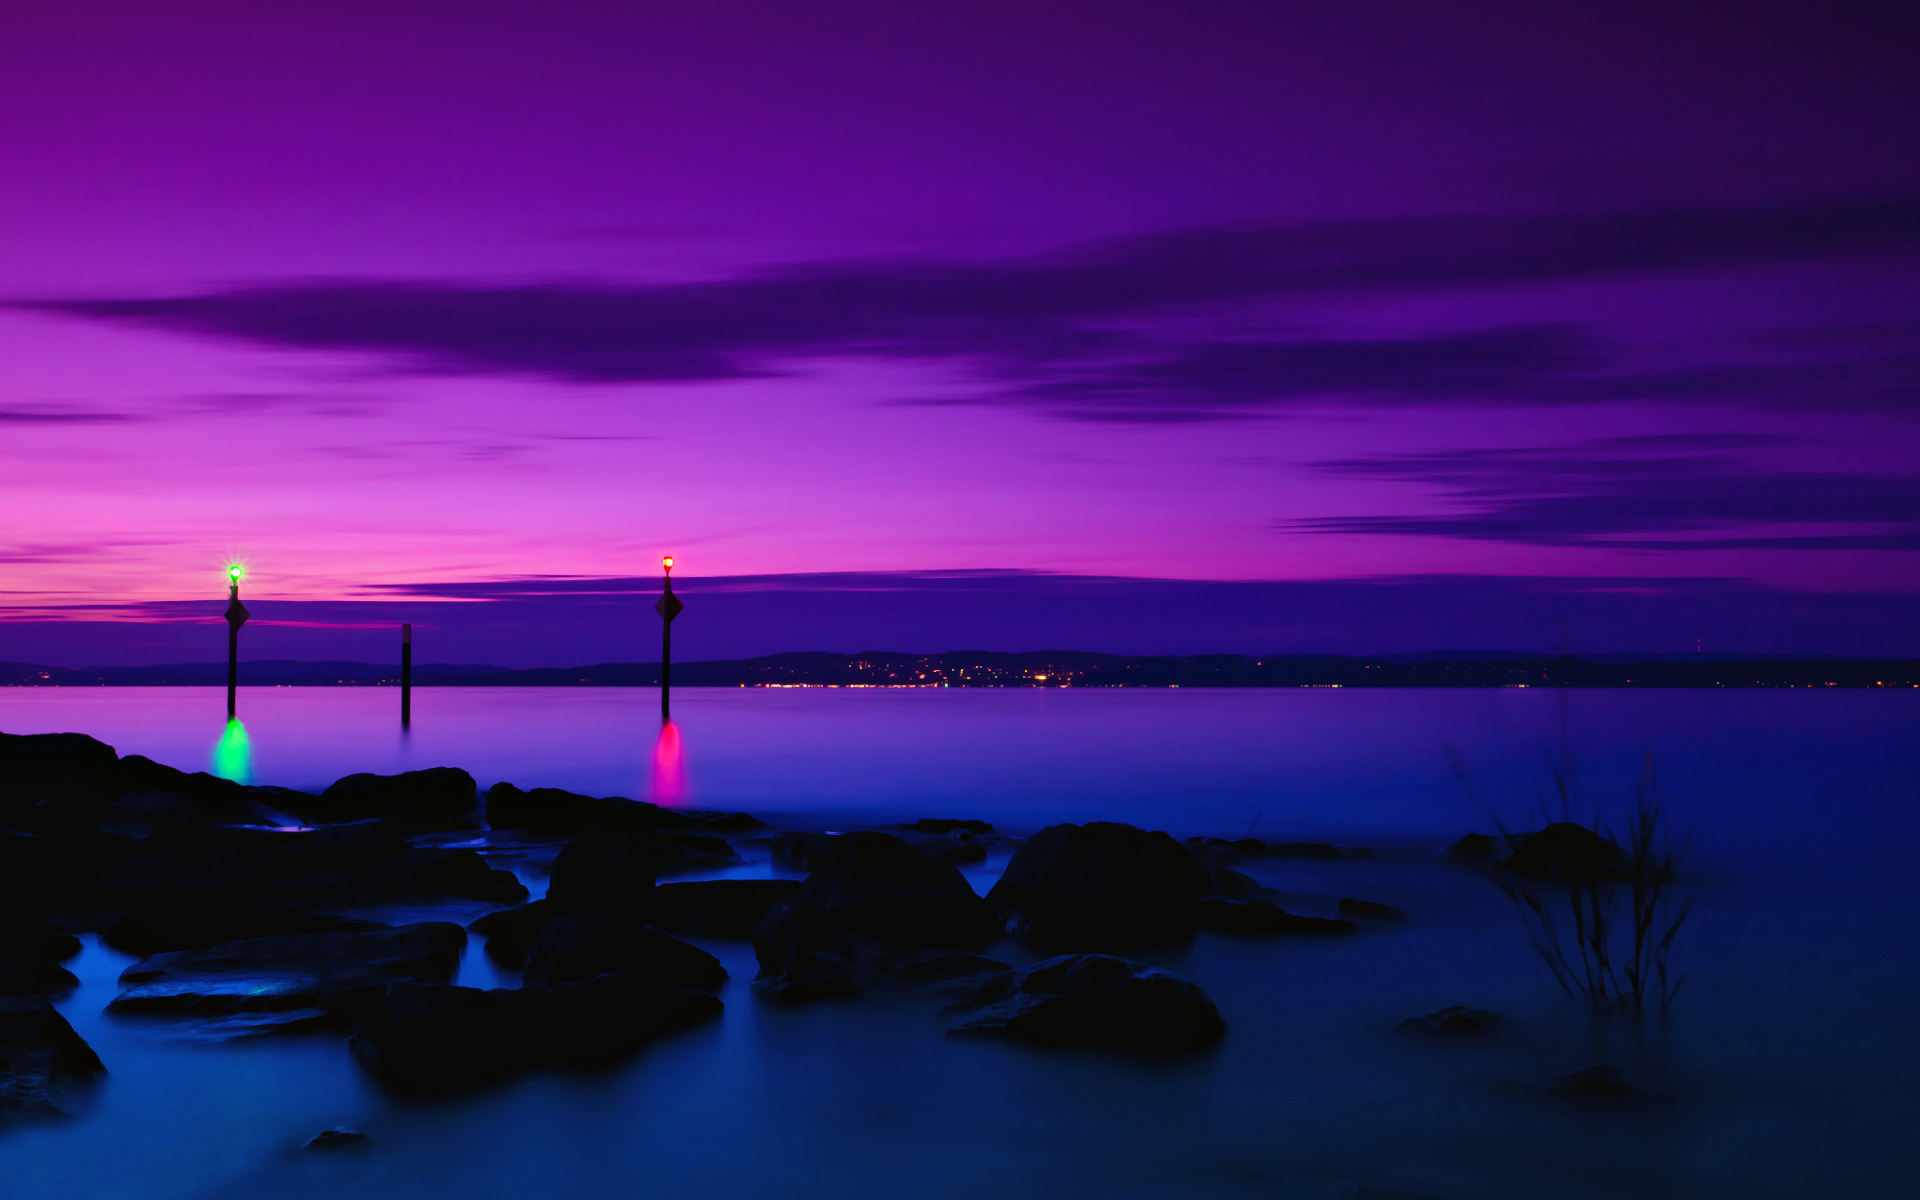 Purple Sunset Wallpaper 23196 1920x1200 px HDWallSourcecom 1920x1200